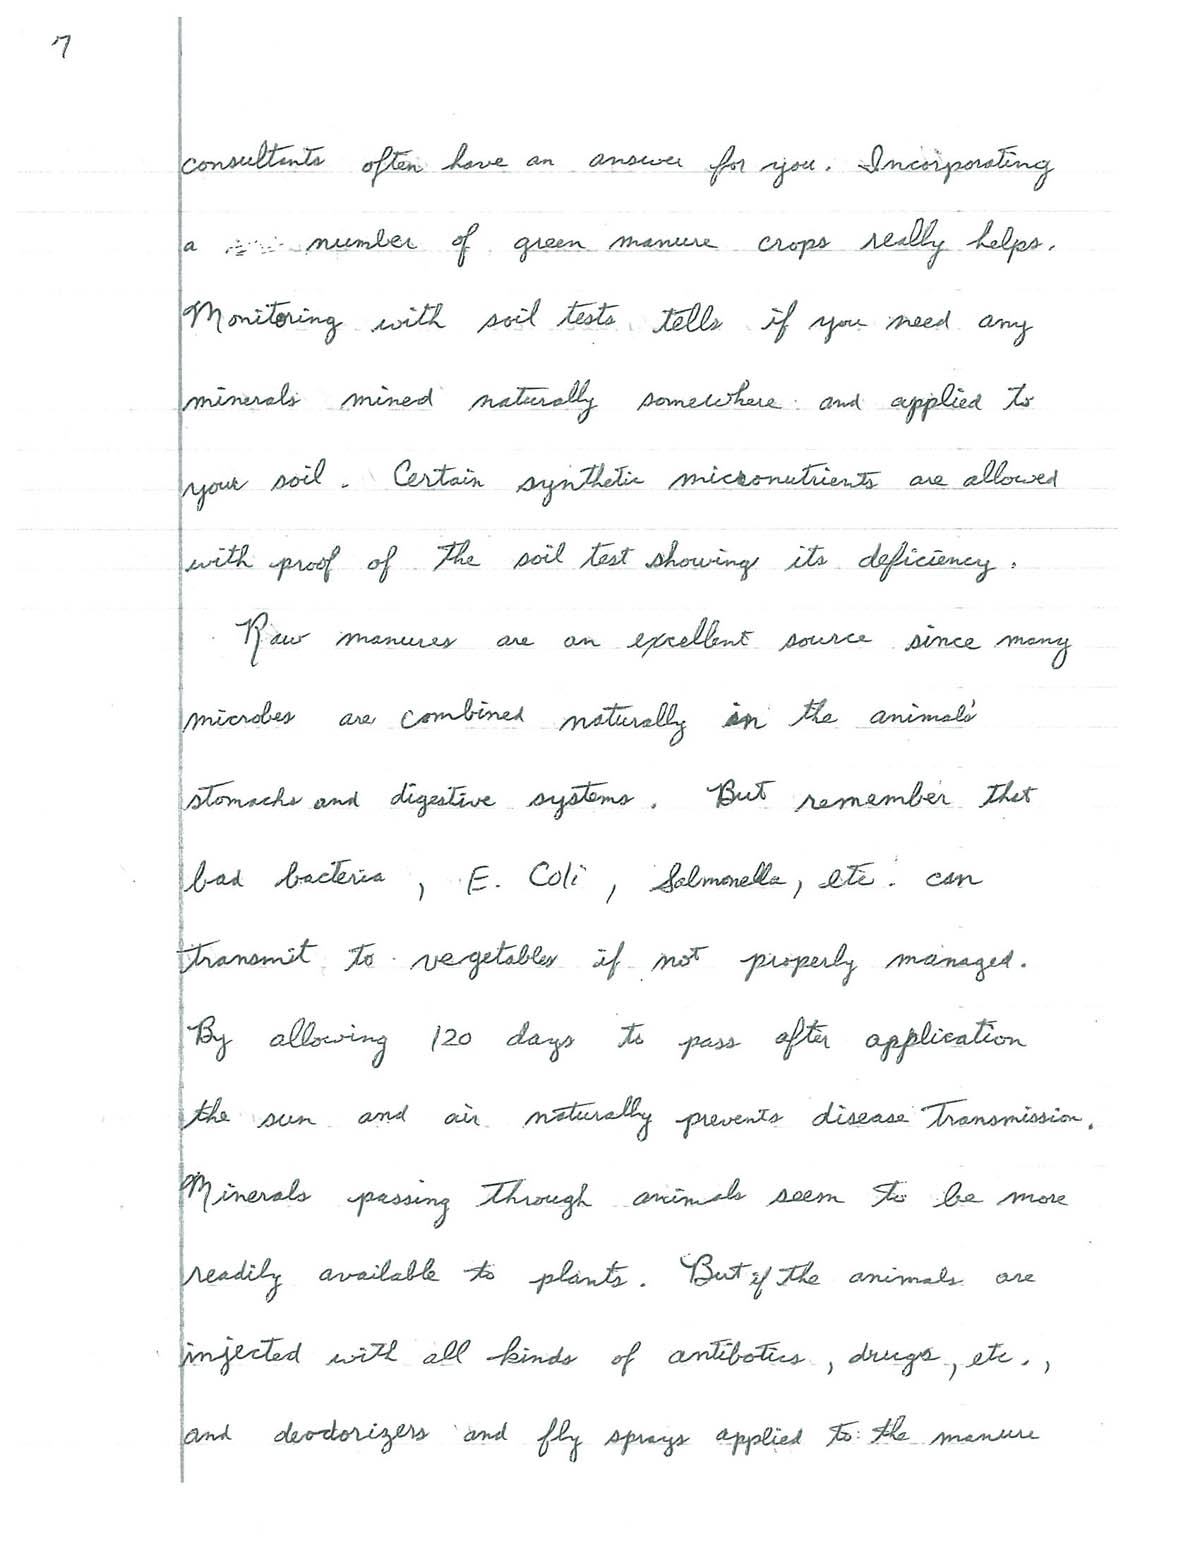 013 Essay Example Handwriting Amish Farmer Importance Good Cursive Vs Typing Analysis Recognition Sat Titles For Fearsome On Short Of In Hindi Gujarati Full